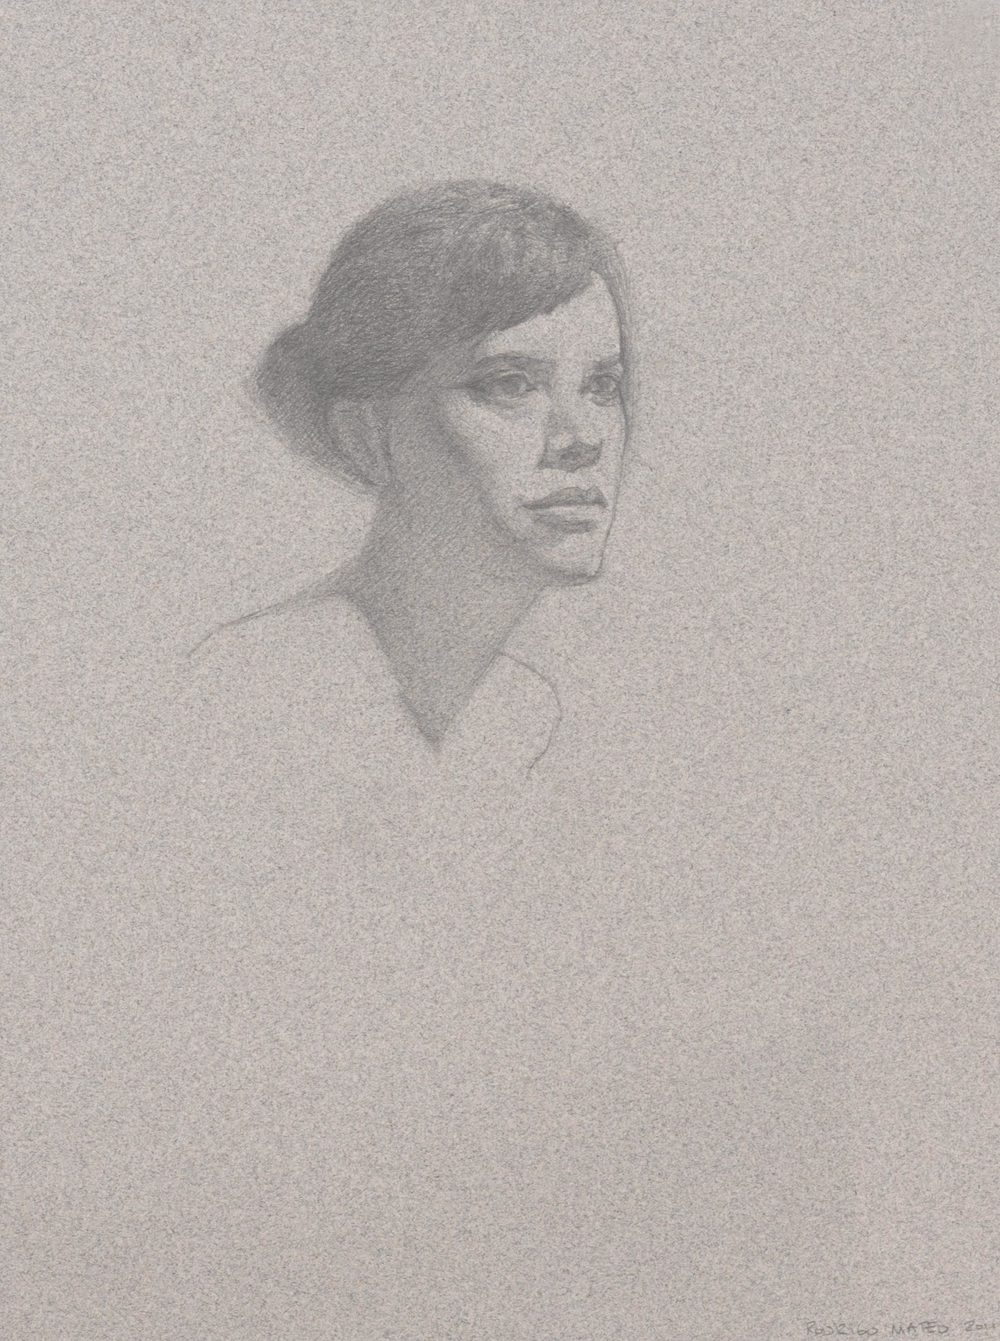 Jessica. 9x12. Graphite on toned paper.